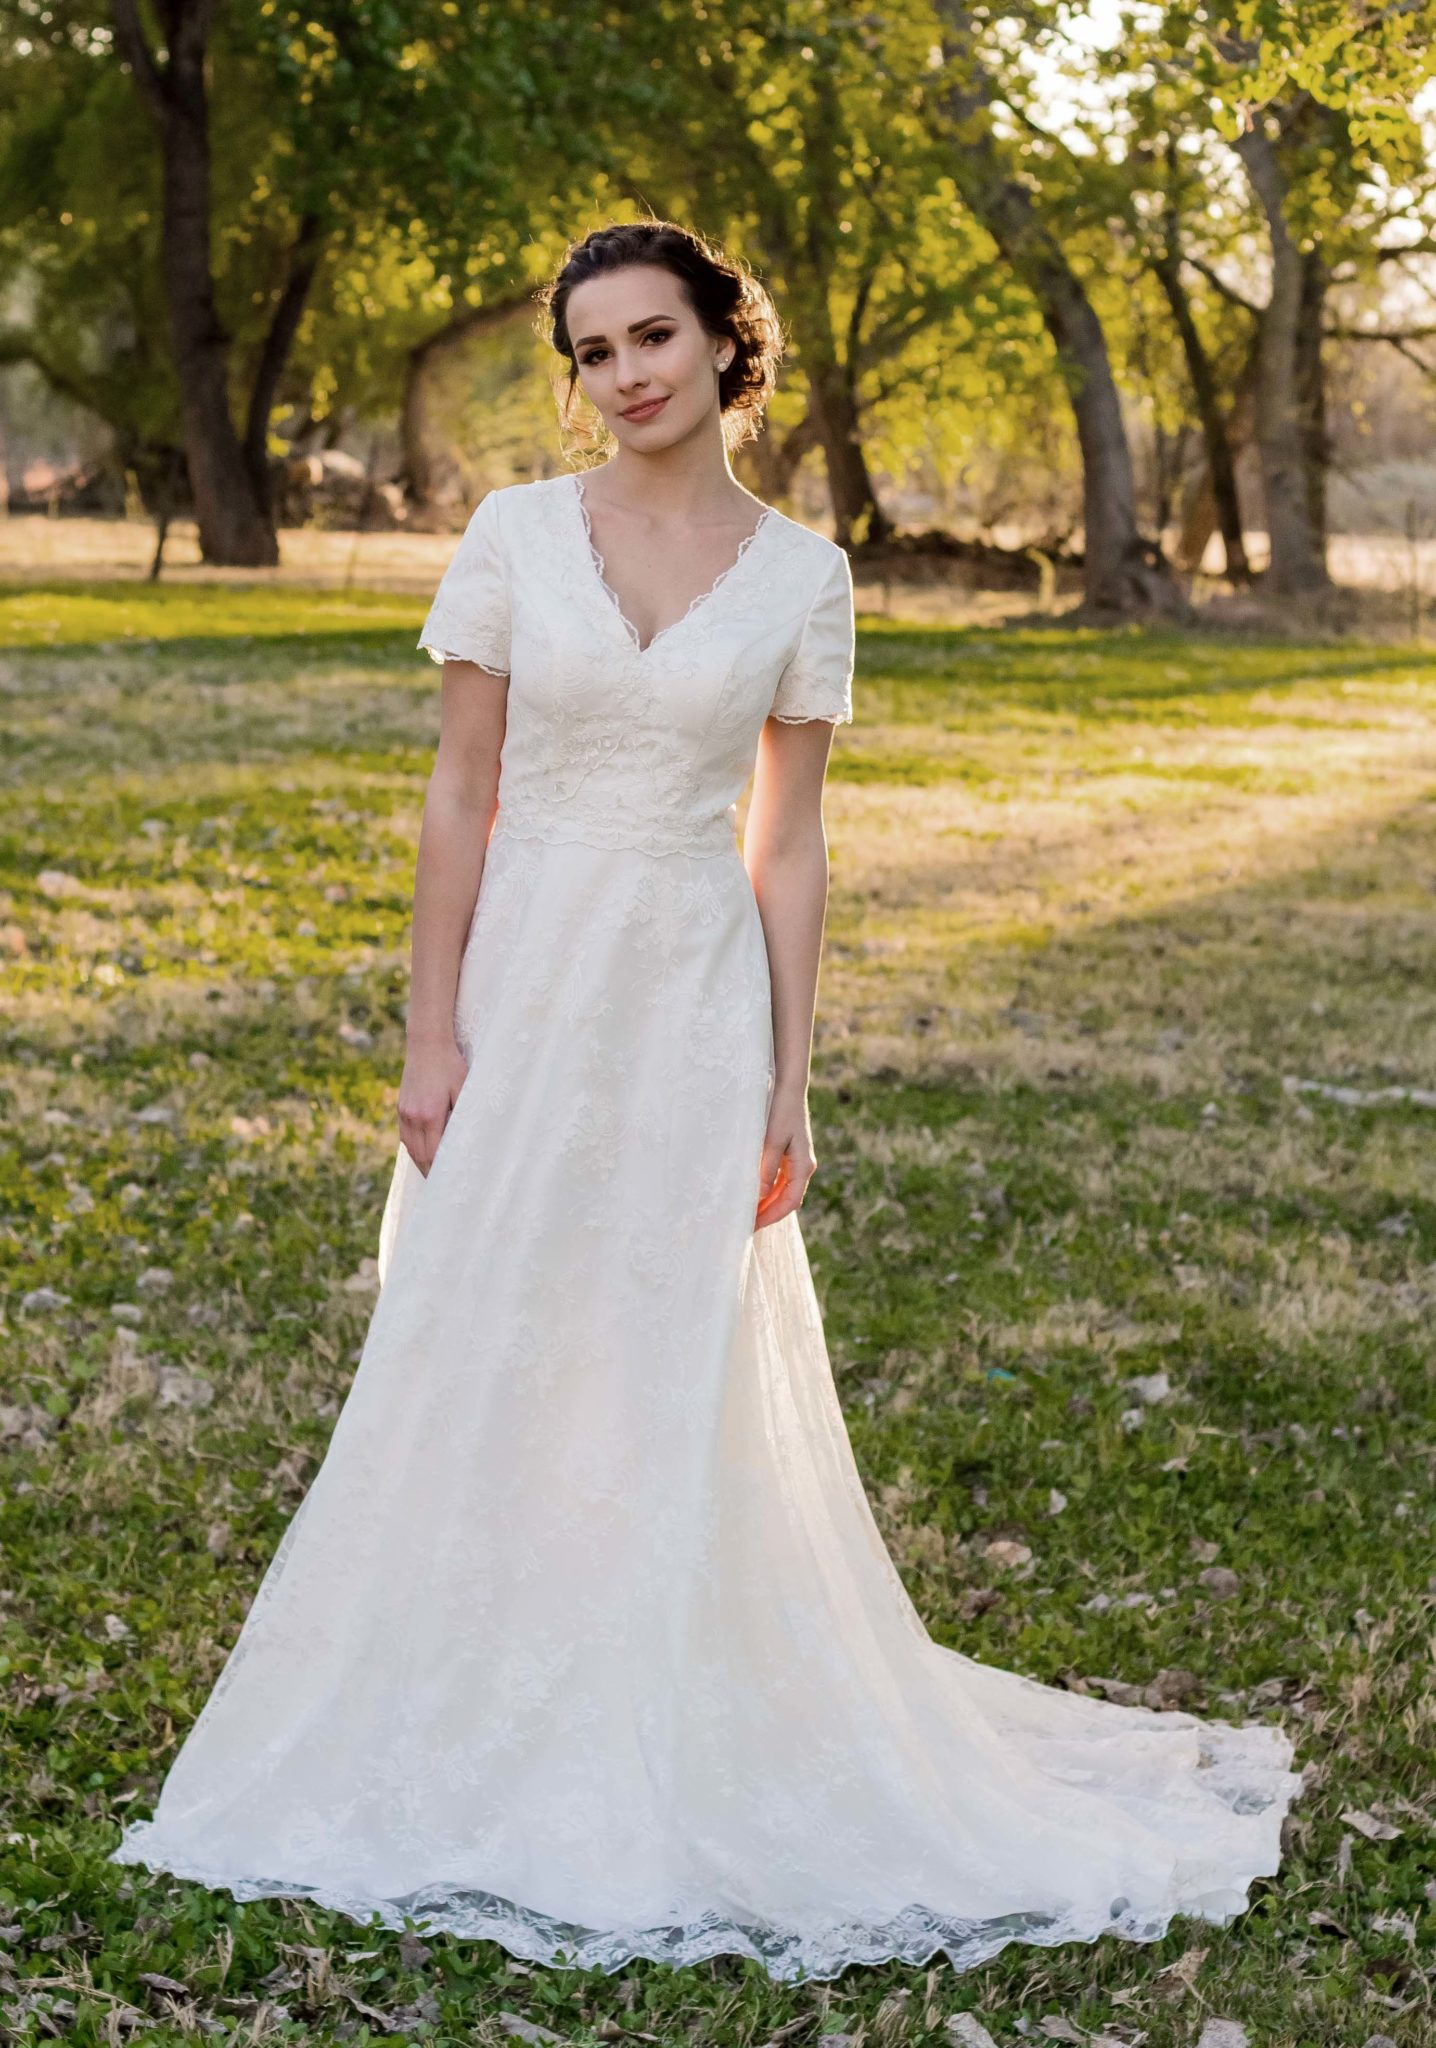 Bride Anna in Modest Affordable custom-made wedding dress